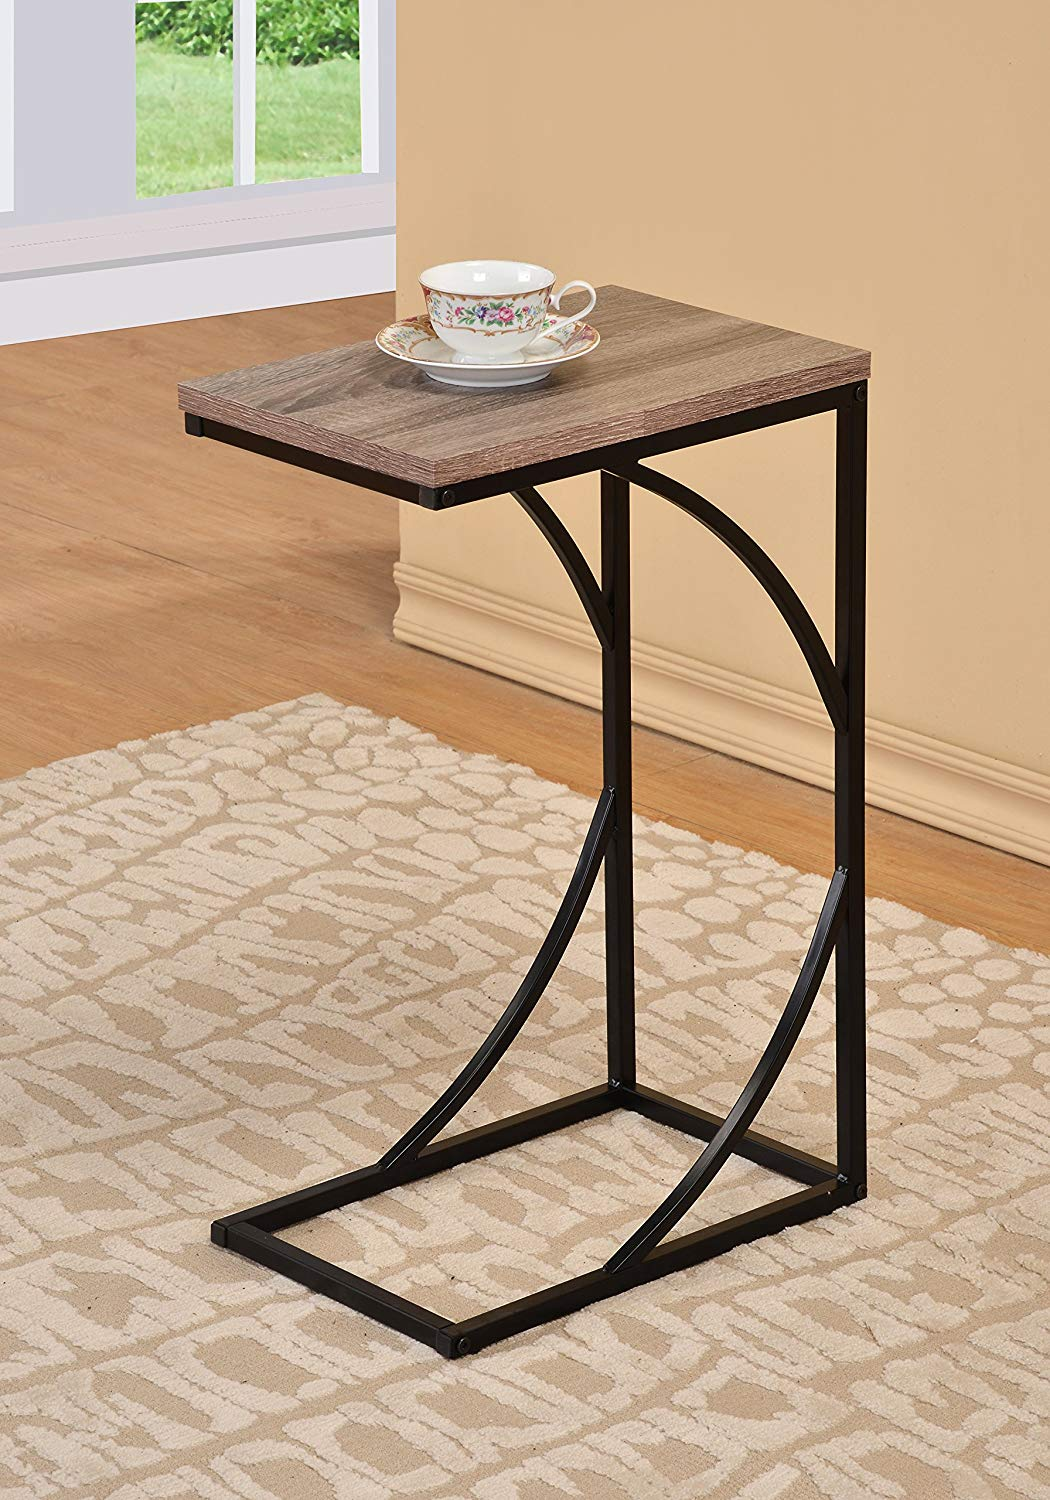 reclaimed wood look finish black frame snack side faux accent table magazine end kitchen dining aluminum coffee outdoor bistro circular drop leaf solid cherry tables battery